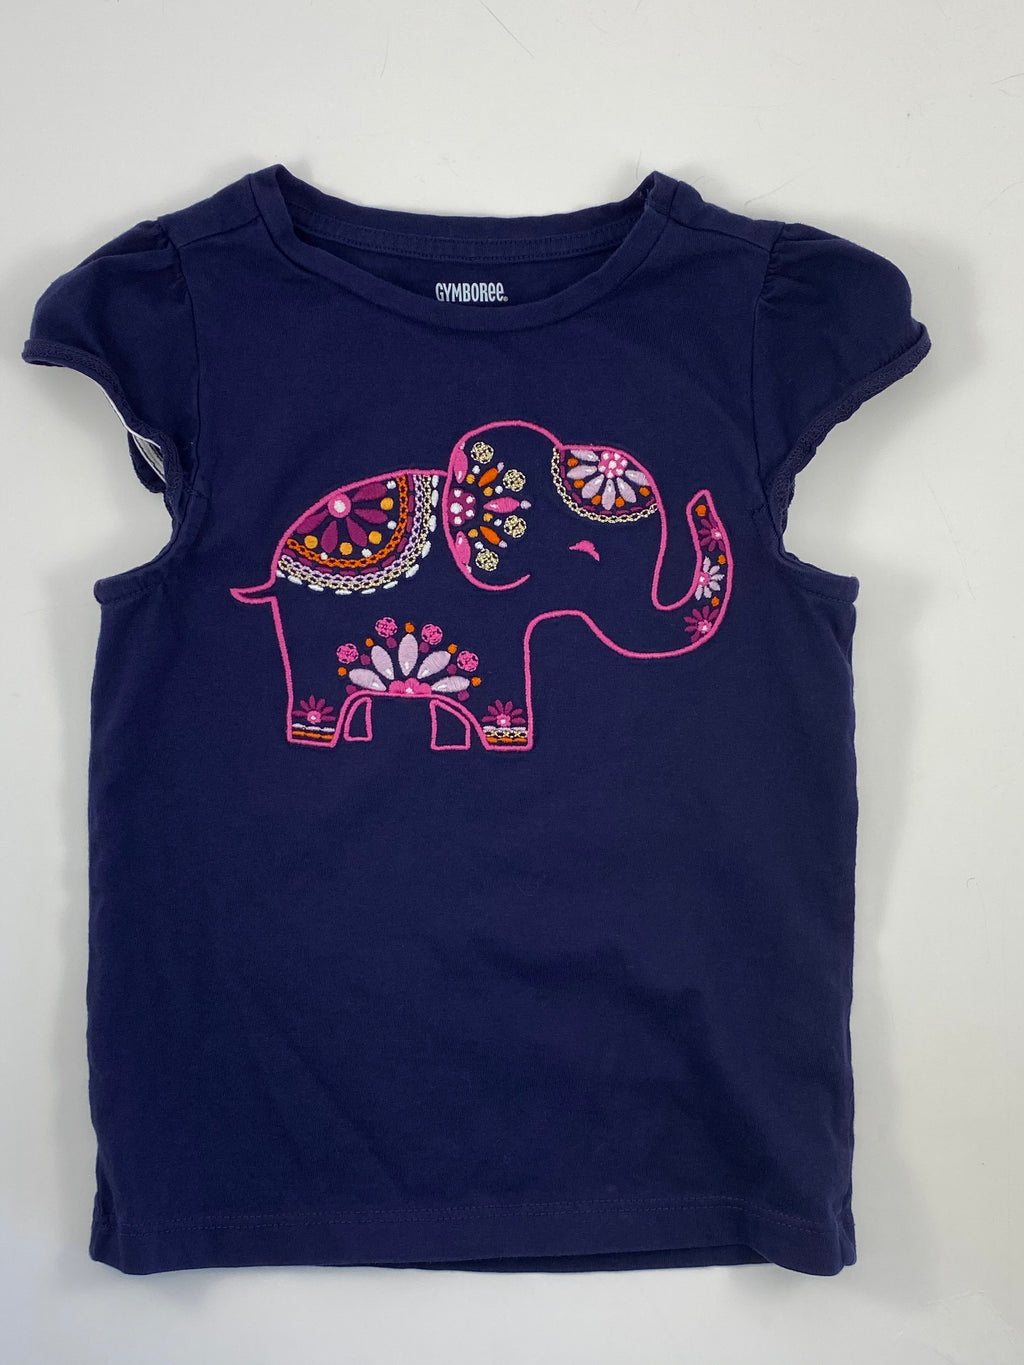 Girl's Short Sleeve Shirt - Size 2t